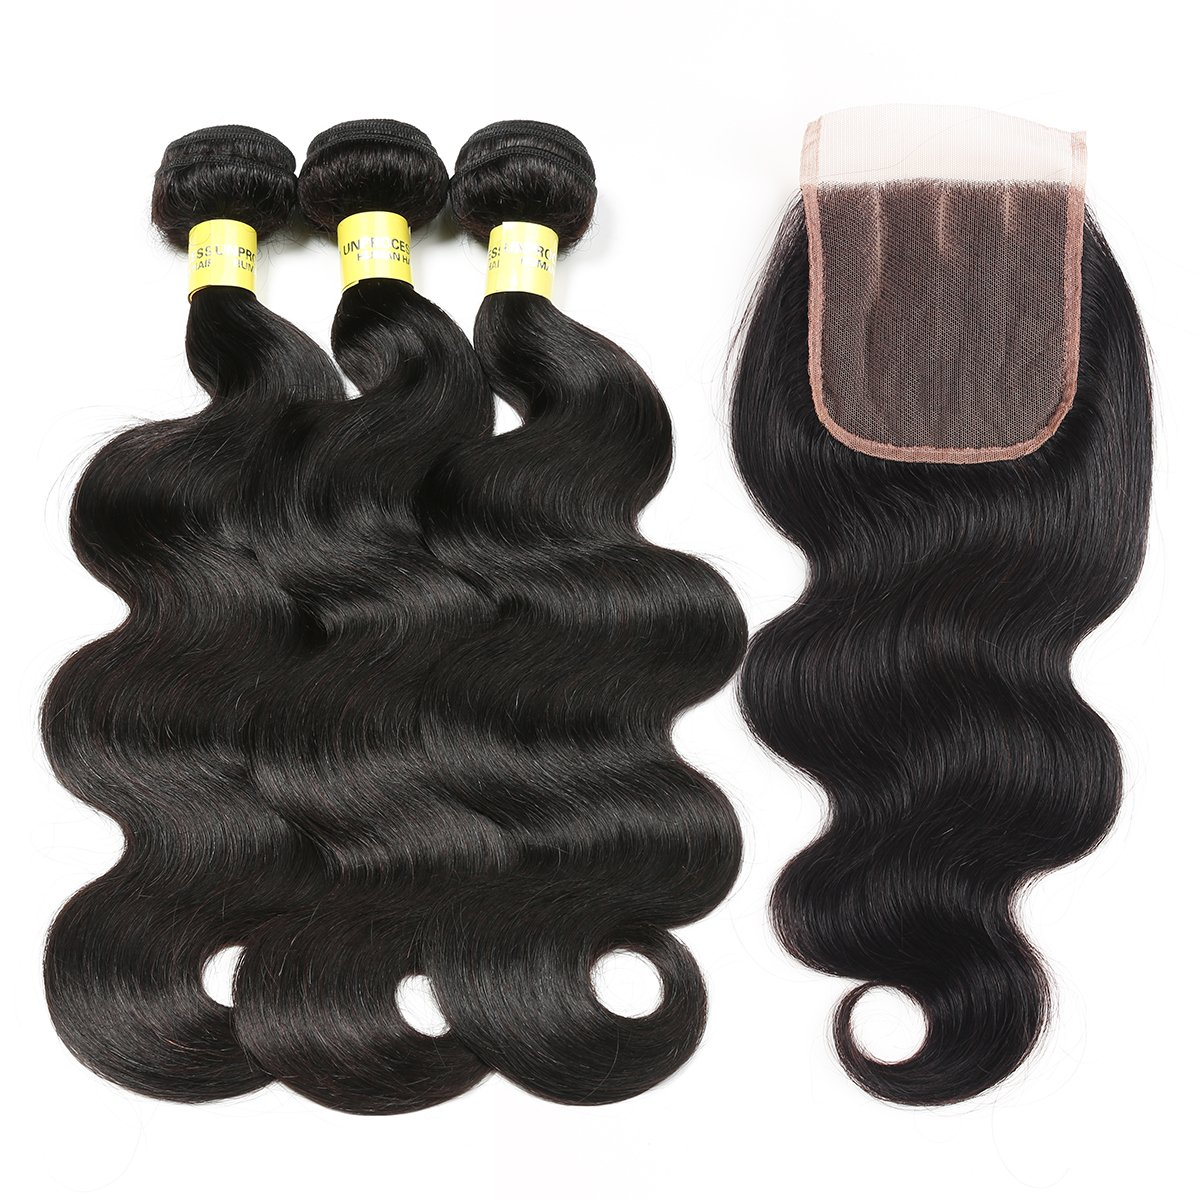 Mureen Brazilian Hair With Closure 8A 3 Bundles Body Wave Virgin Human Hair Bundles With Lace Closure 100% Unprocessed Hair Extensions Natural Black Color (10 12 14 + 10, Three Part)